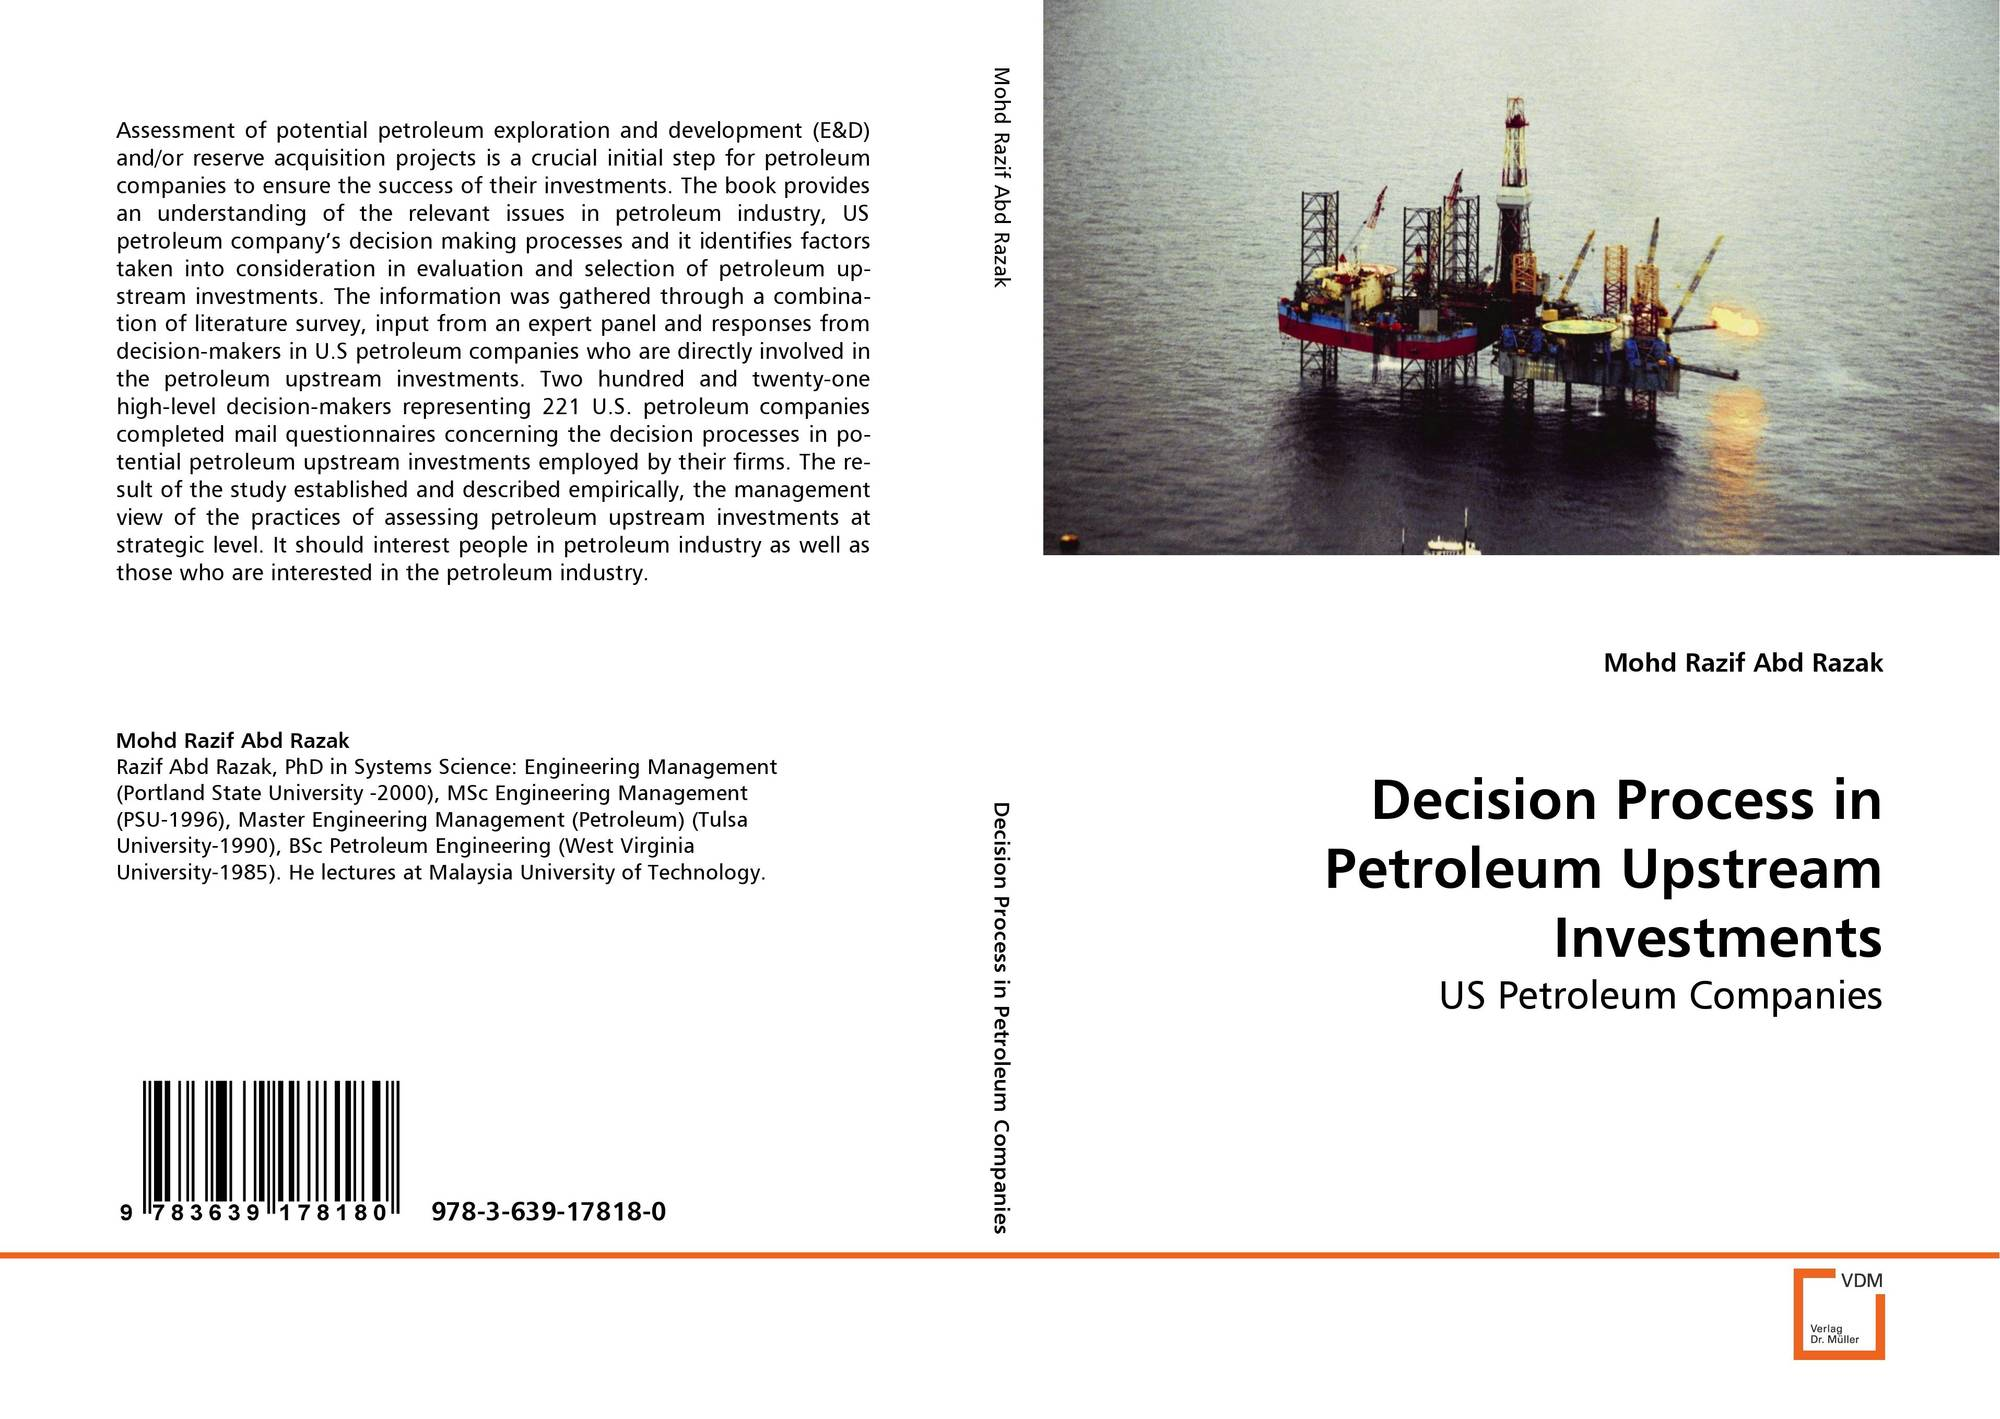 Decision Process in Petroleum Upstream Investments, 978-3-639-17818